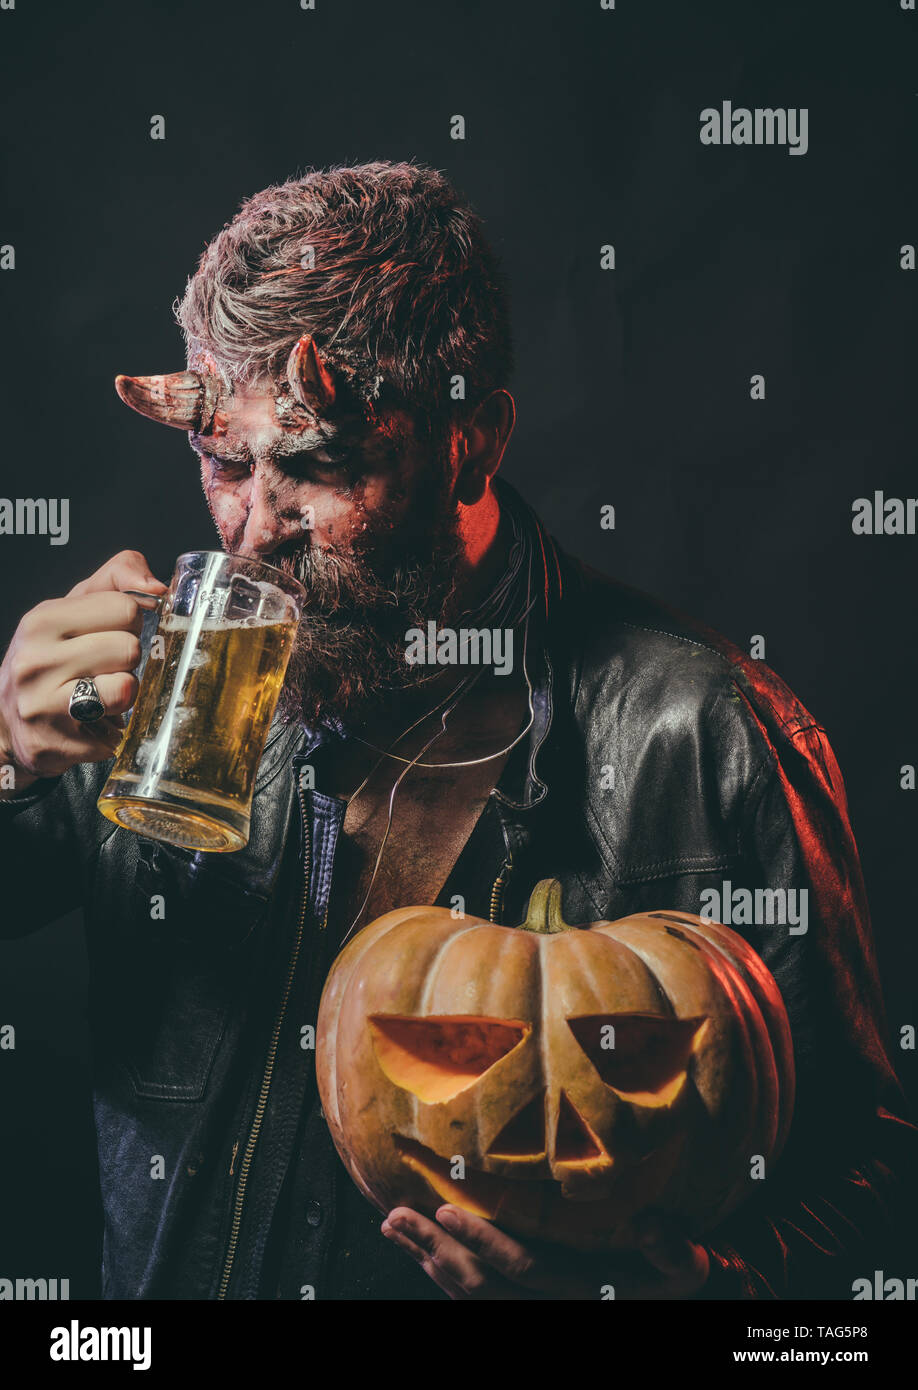 Halloween Maan.Halloween Man With Satan Horns Hold Pumpkin Bad Habits And